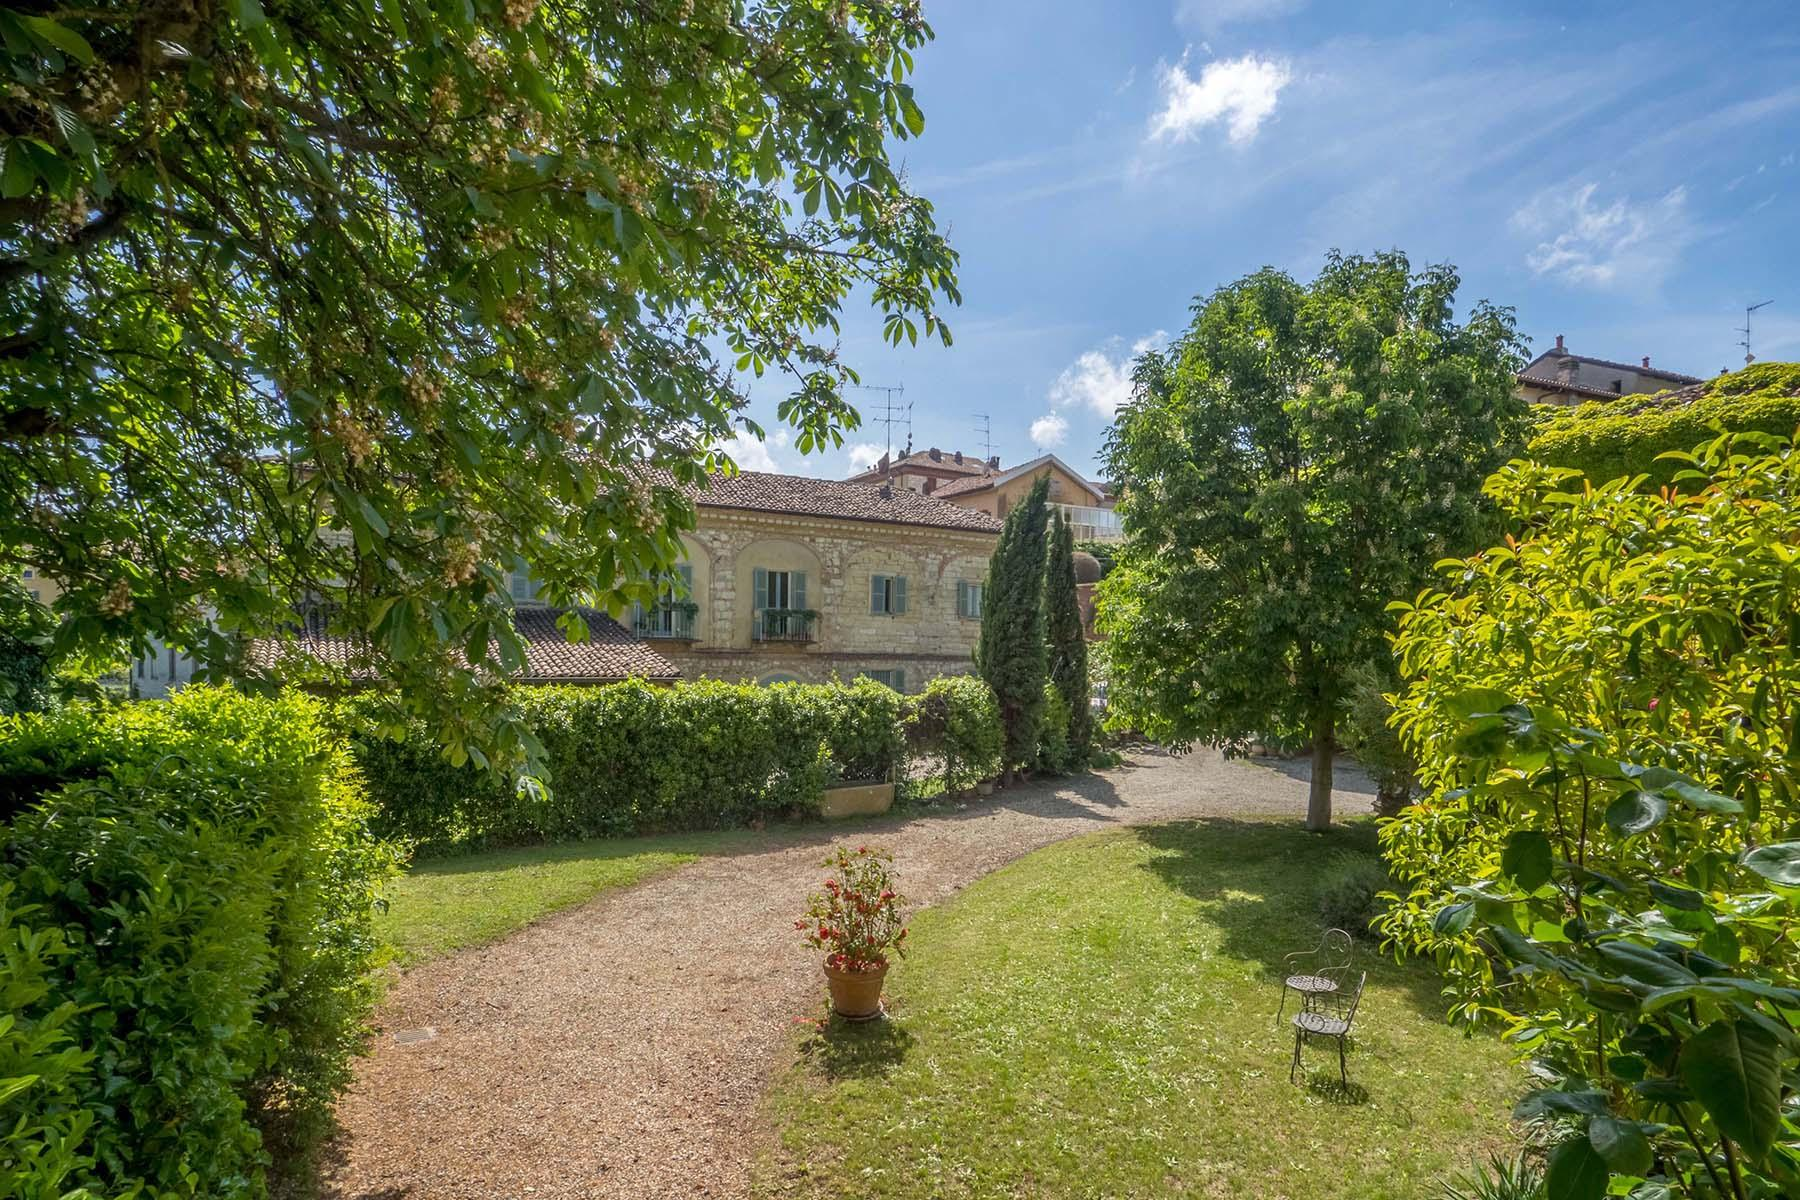 Enchanting historical villa in the heart of the Monferrato region - 24